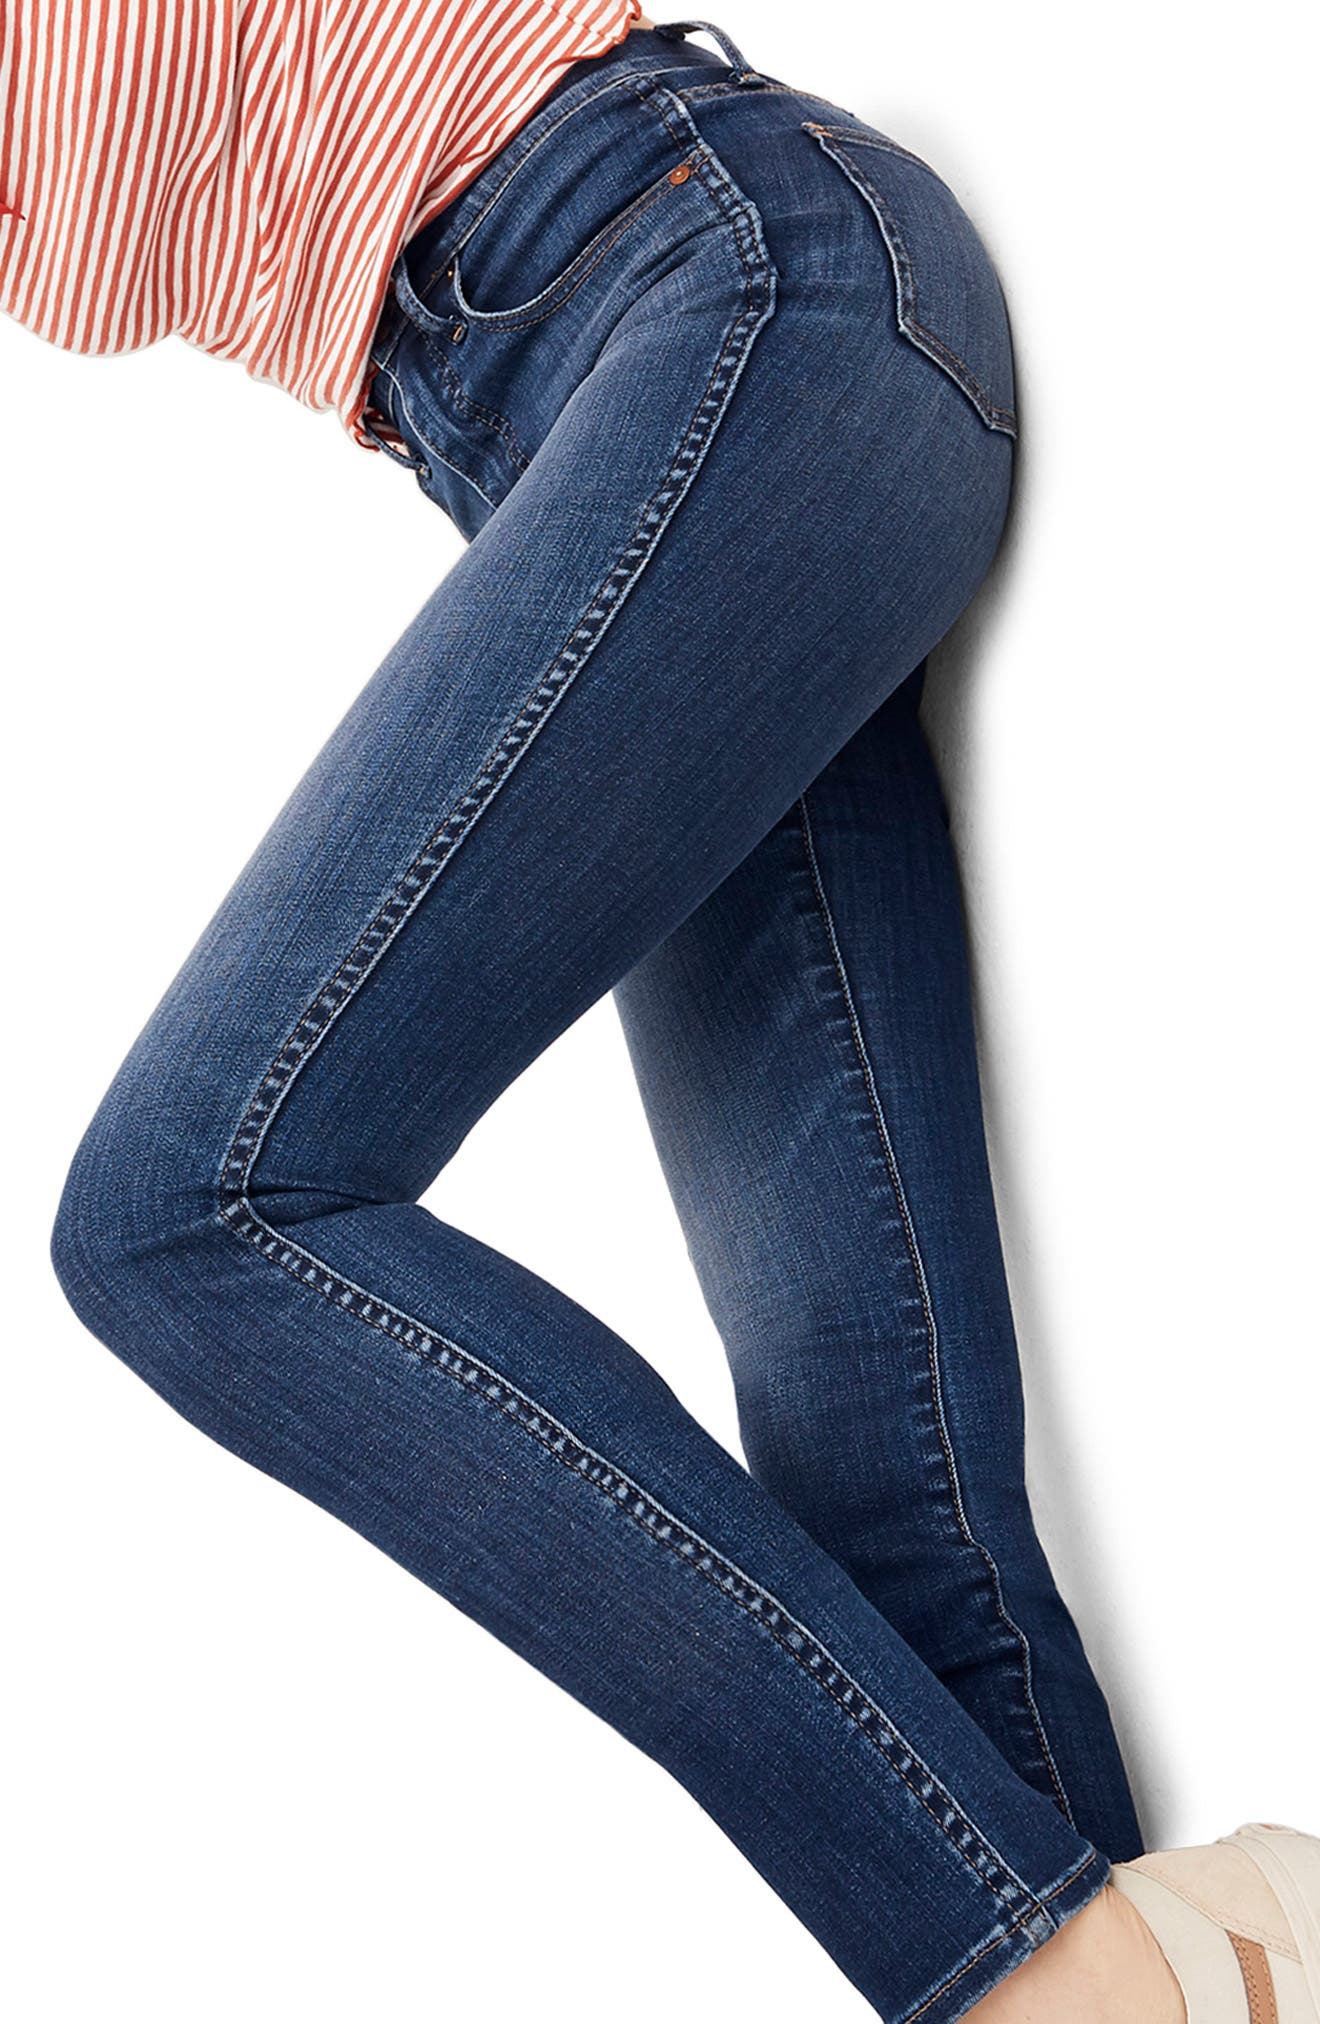 10-Inch High Rise Skinny Jeans,                             Alternate thumbnail 6, color,                             DANNY